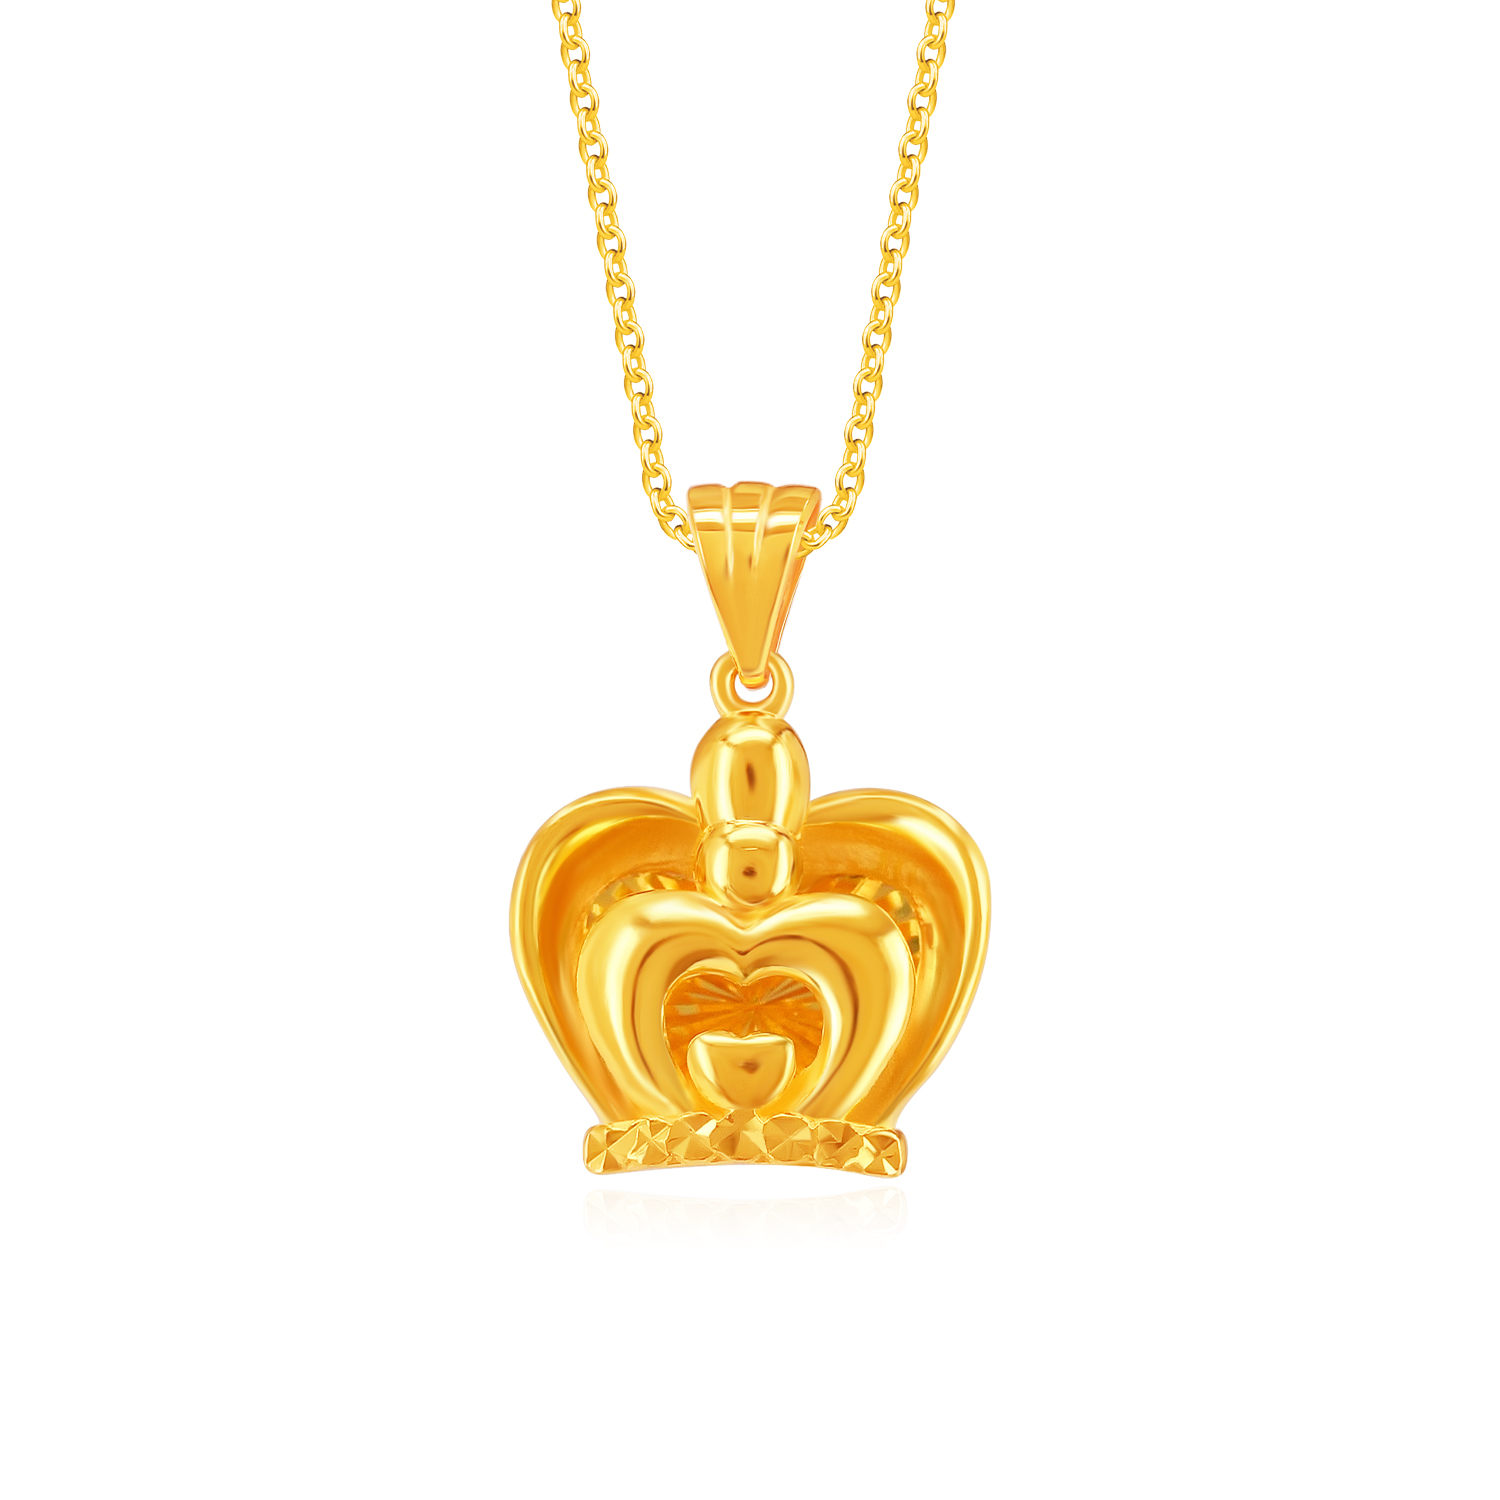 SK 916 Own the Crown Gold Pendant